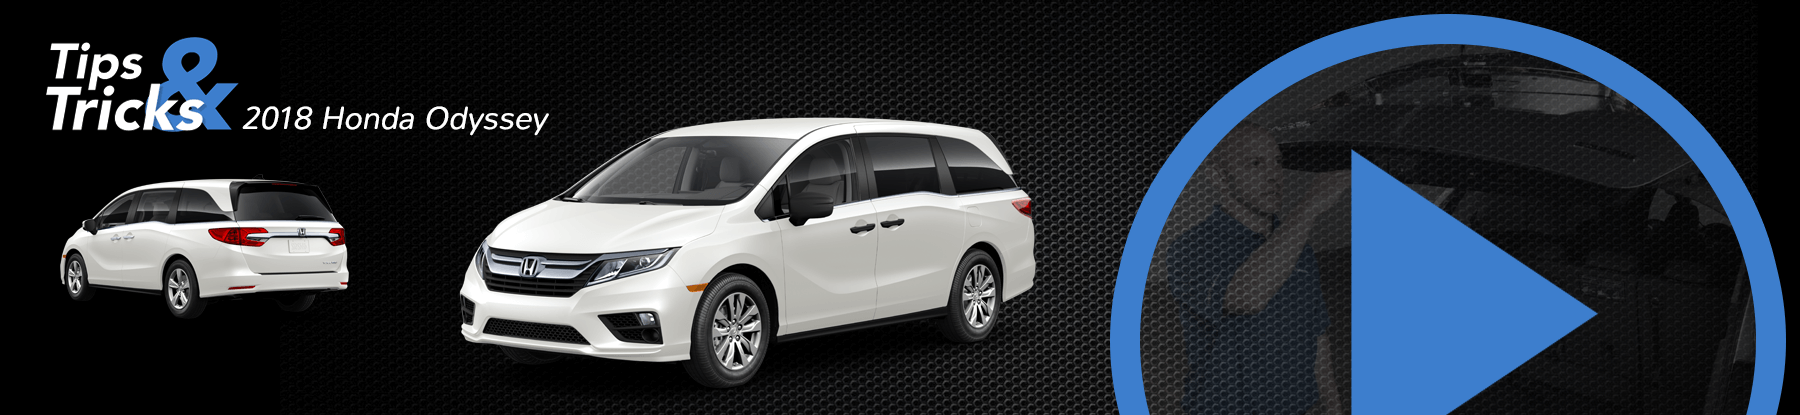 2018 Honda Odyssey Tips and Tricks